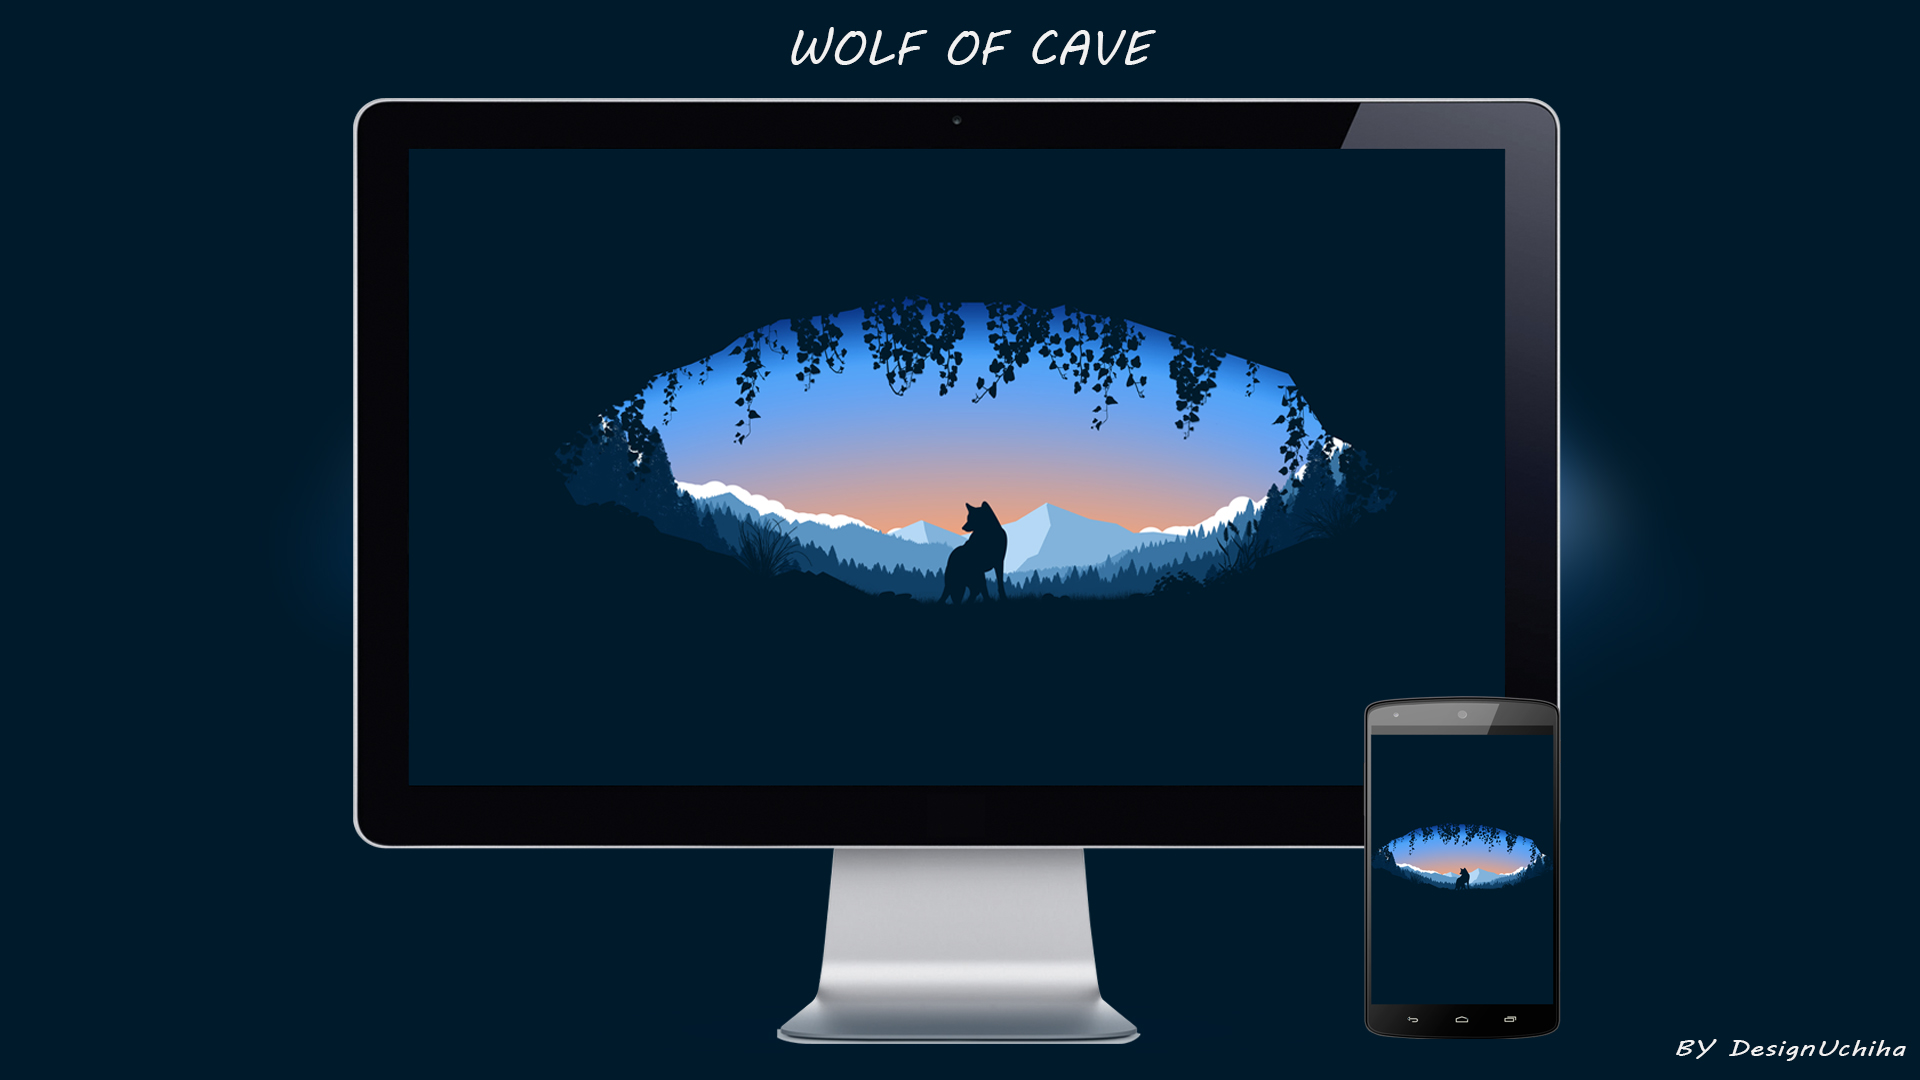 WOLF OF CAVE by designuchiha.jpg